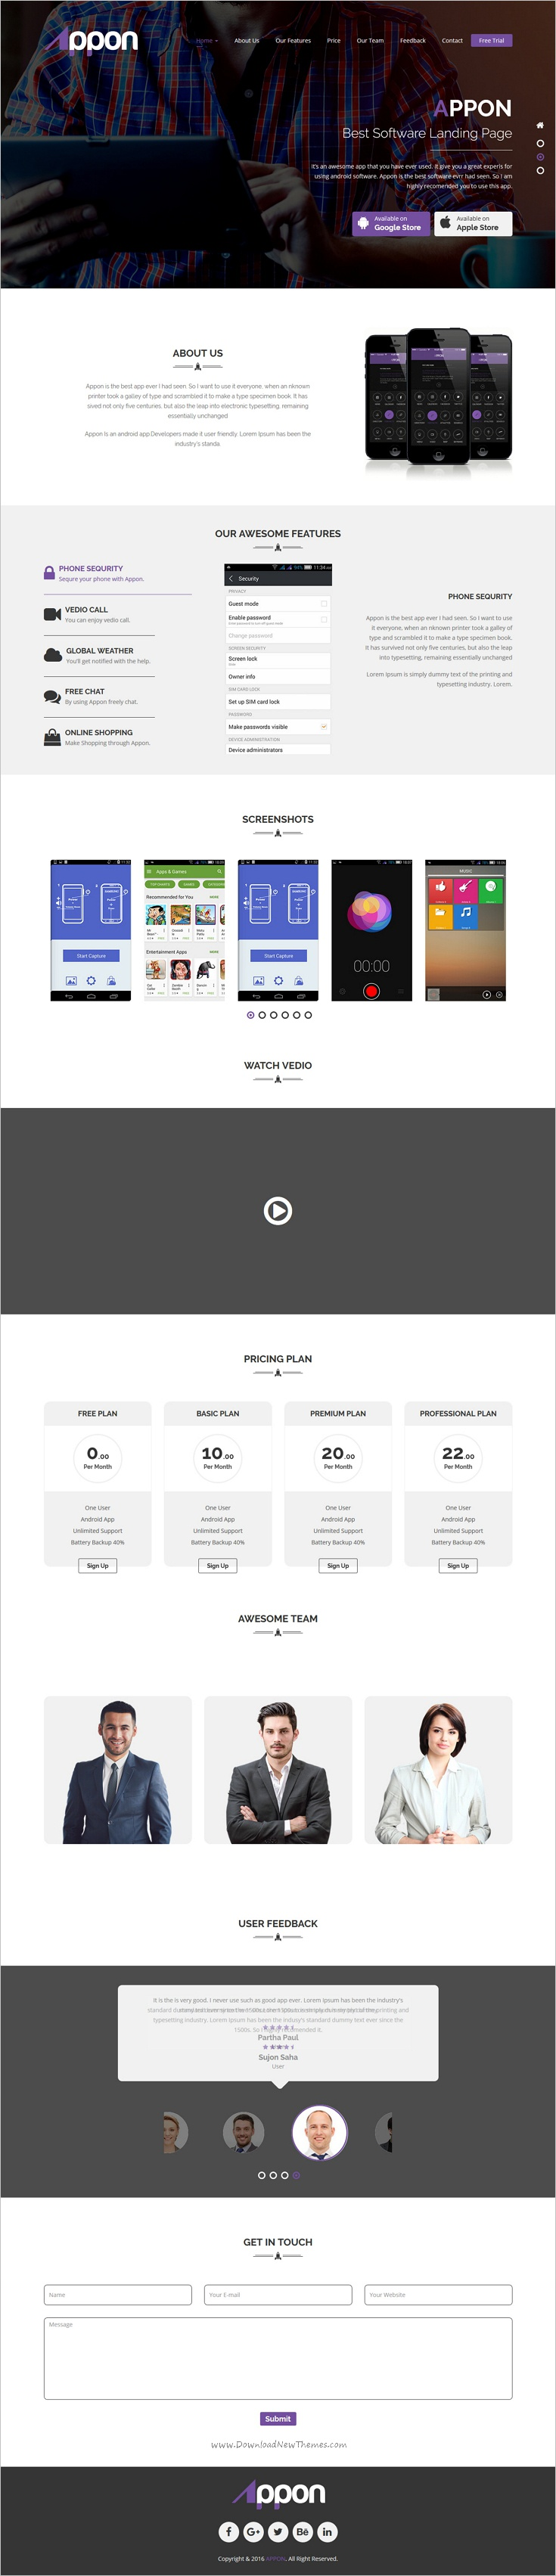 Appon is a wonderful #responsive 3in1 HTML5 #Bootstrap template for app #landing page website download now➩ https://themeforest.net/item/appon-html5-app-landing-page/19174281?ref=Datasata